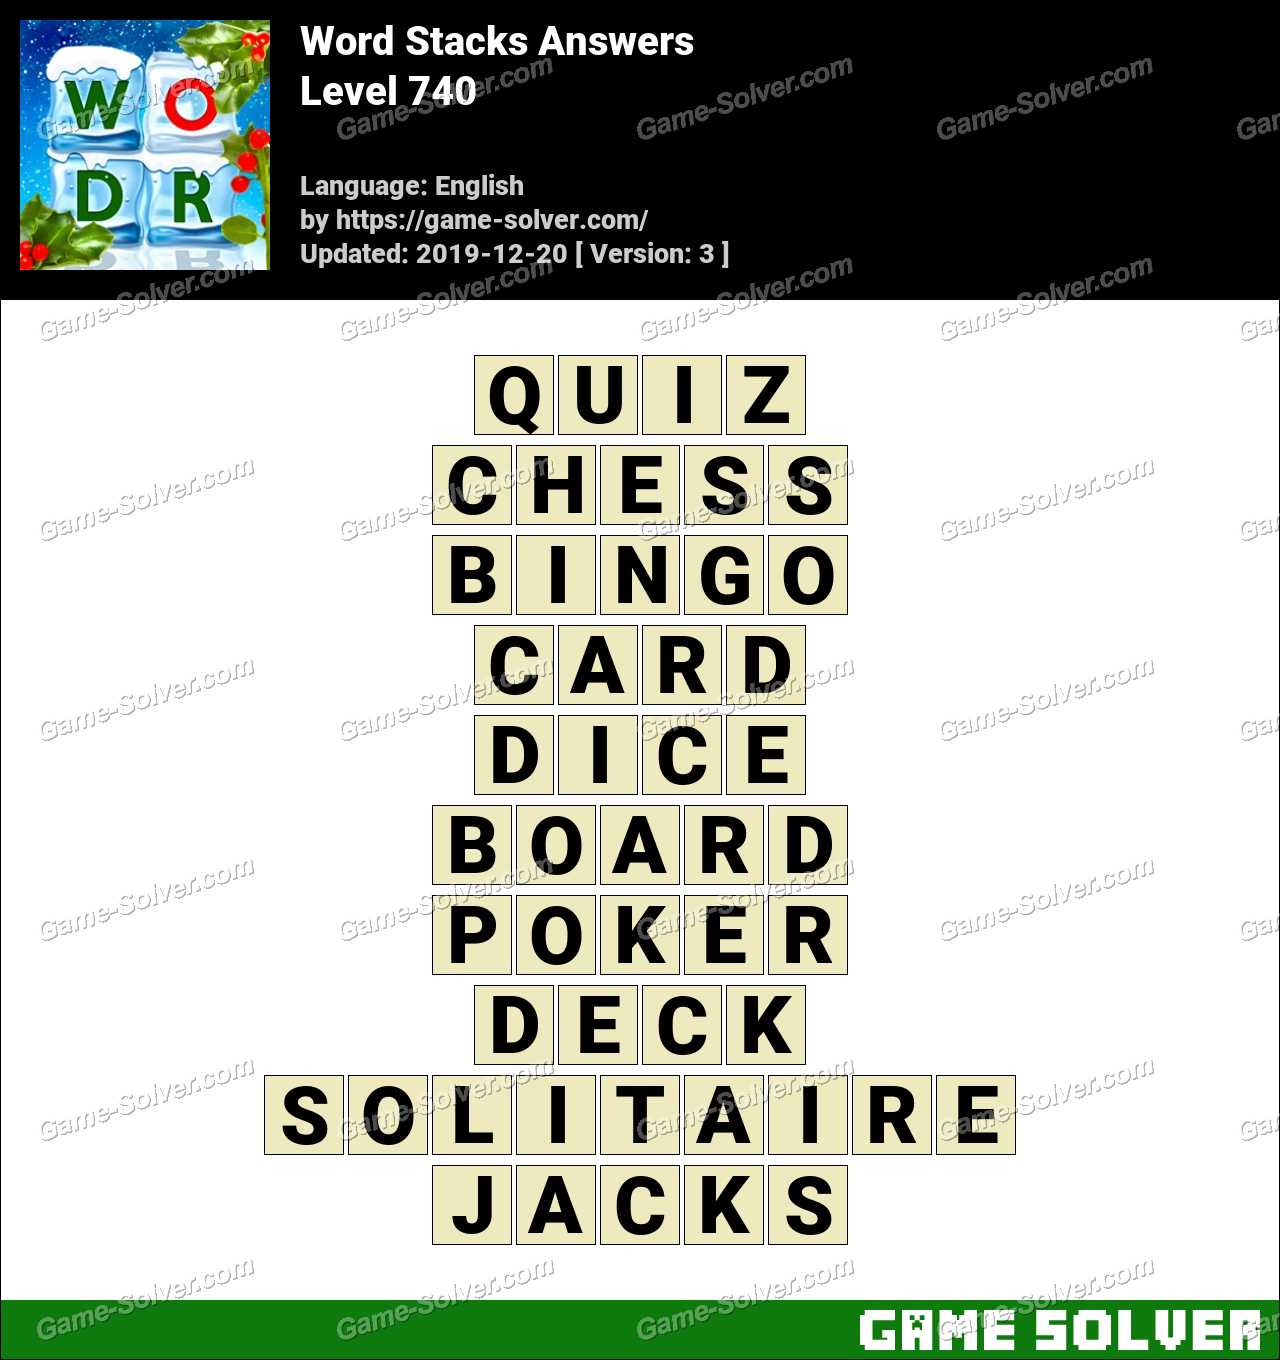 Word Stacks Level 740 Answers